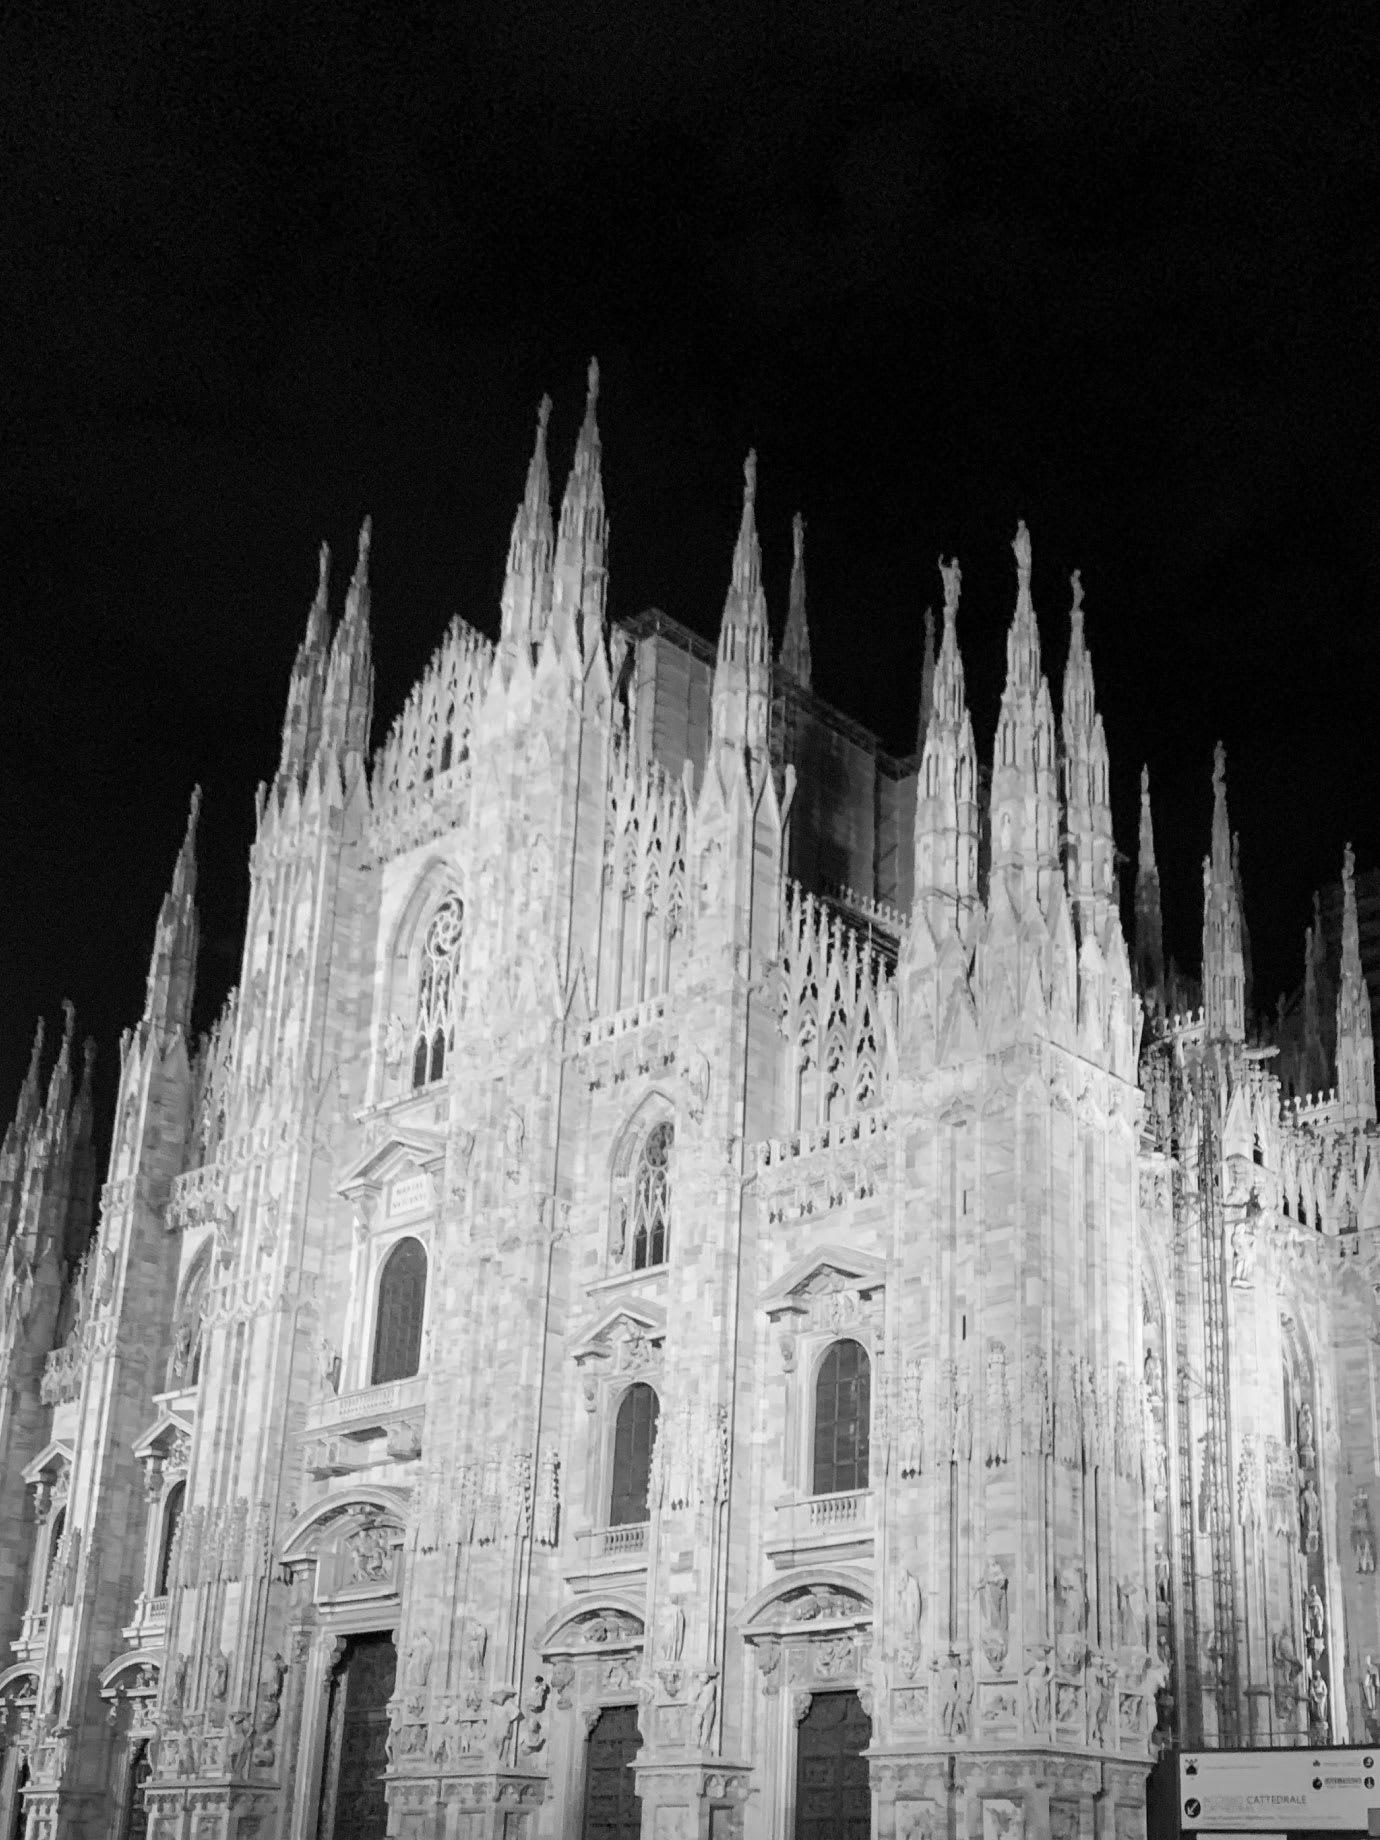 The front facade of a gothic cathedral.